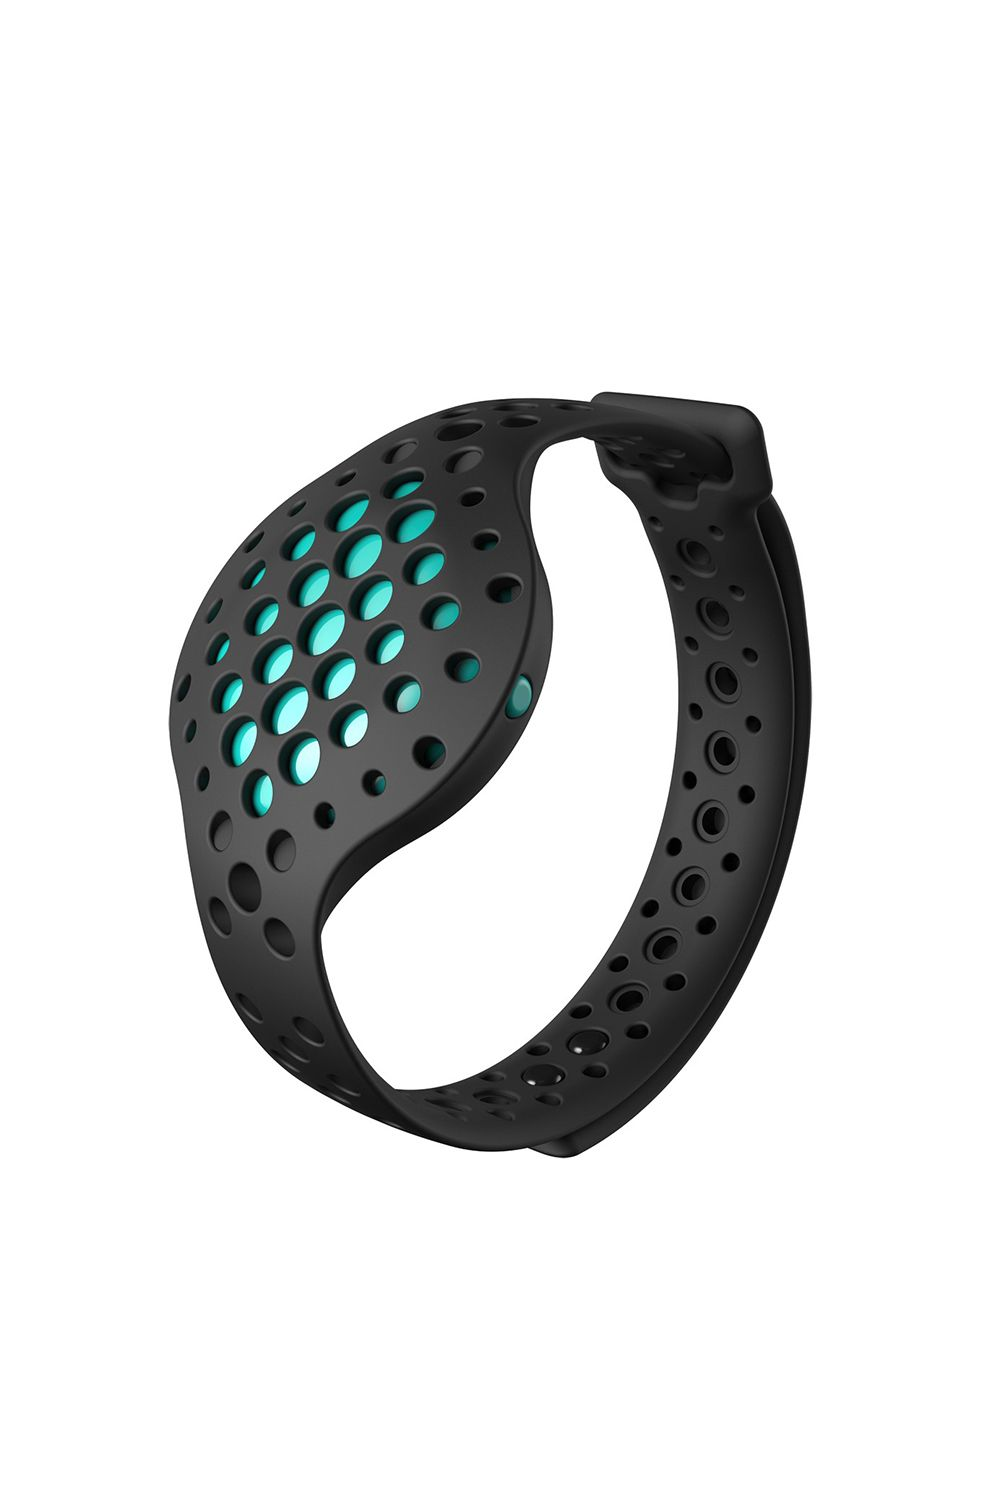 "<p>Scaling up from its first sports wearable last year, Moov's latest perforated watch model is known as the Moov Now. The original served as a sports coach, equipped with sensors that kept stats on your speed and movement—great for runners, boxers, cyclists, and swimmers, especially. This time, new features include step and sleep tracking, plus daily activity monitors. </p><p><strong>Moov Now, $60; <a href=""https://store.moov.cc/products/moov-now"">store.moov.cc</a>.</strong><strong></strong></p>"